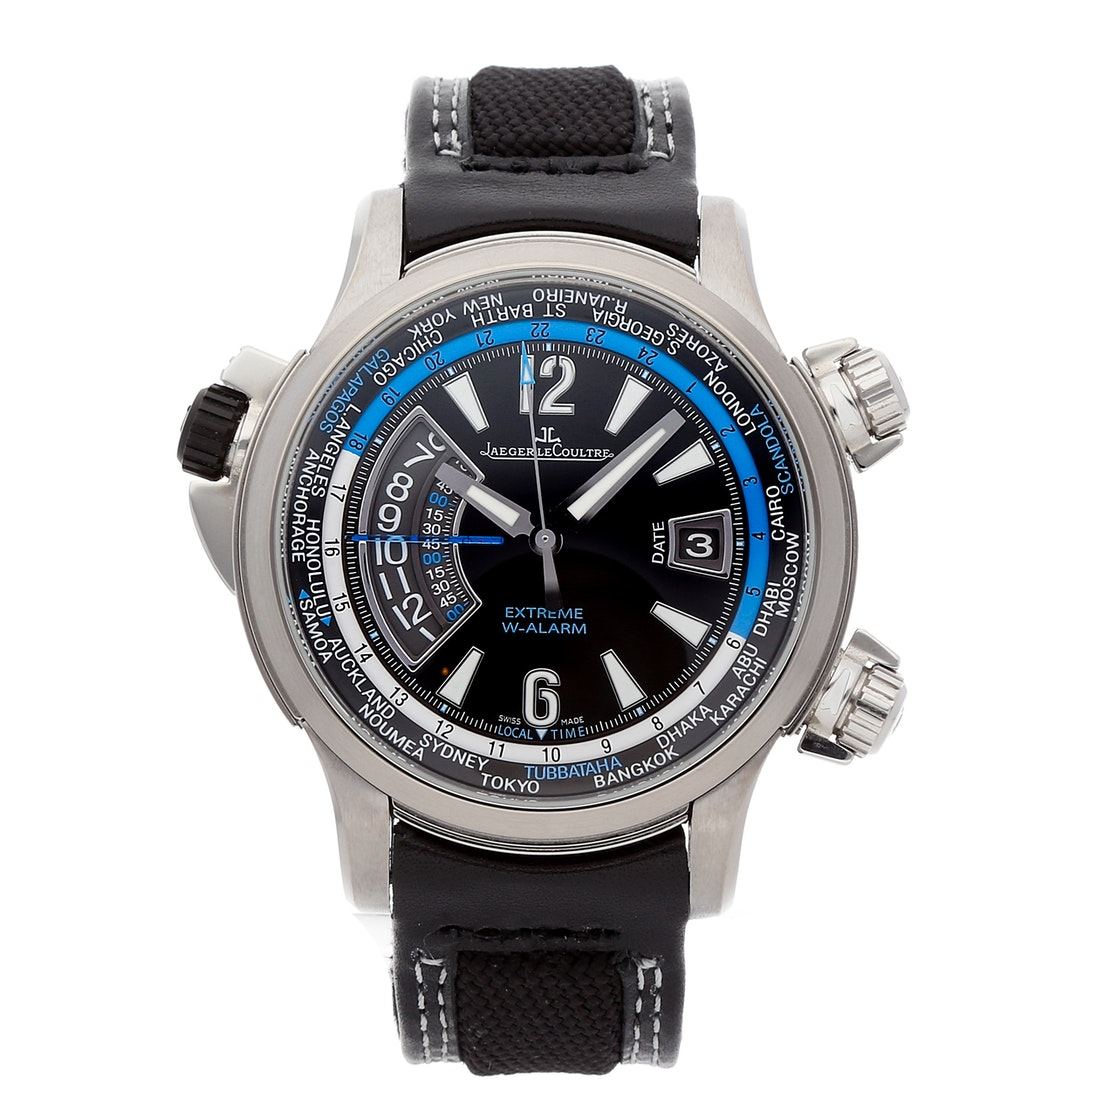 Jaeger-LeCoultre Master Compressor Extreme World Alarm Limited Edition Q177847T